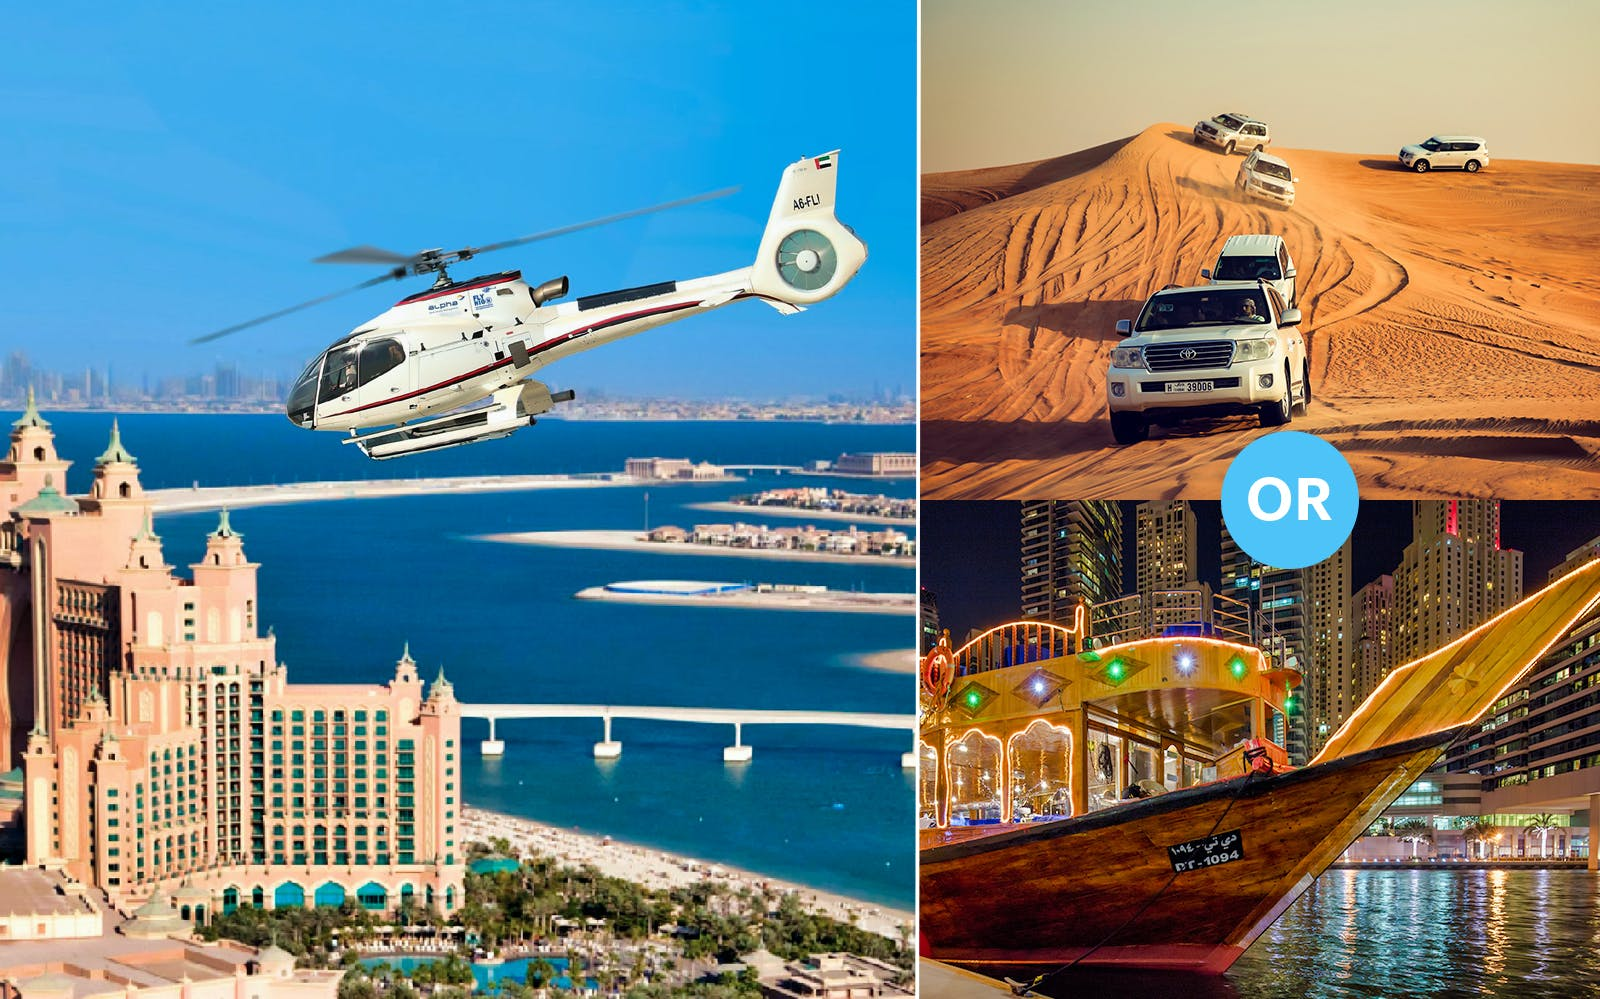 15 Minutes Luxury Helicopter Tour with Free Al Maha Desert Safari OR Dhow Dinner Cruise (Dubai Creek)